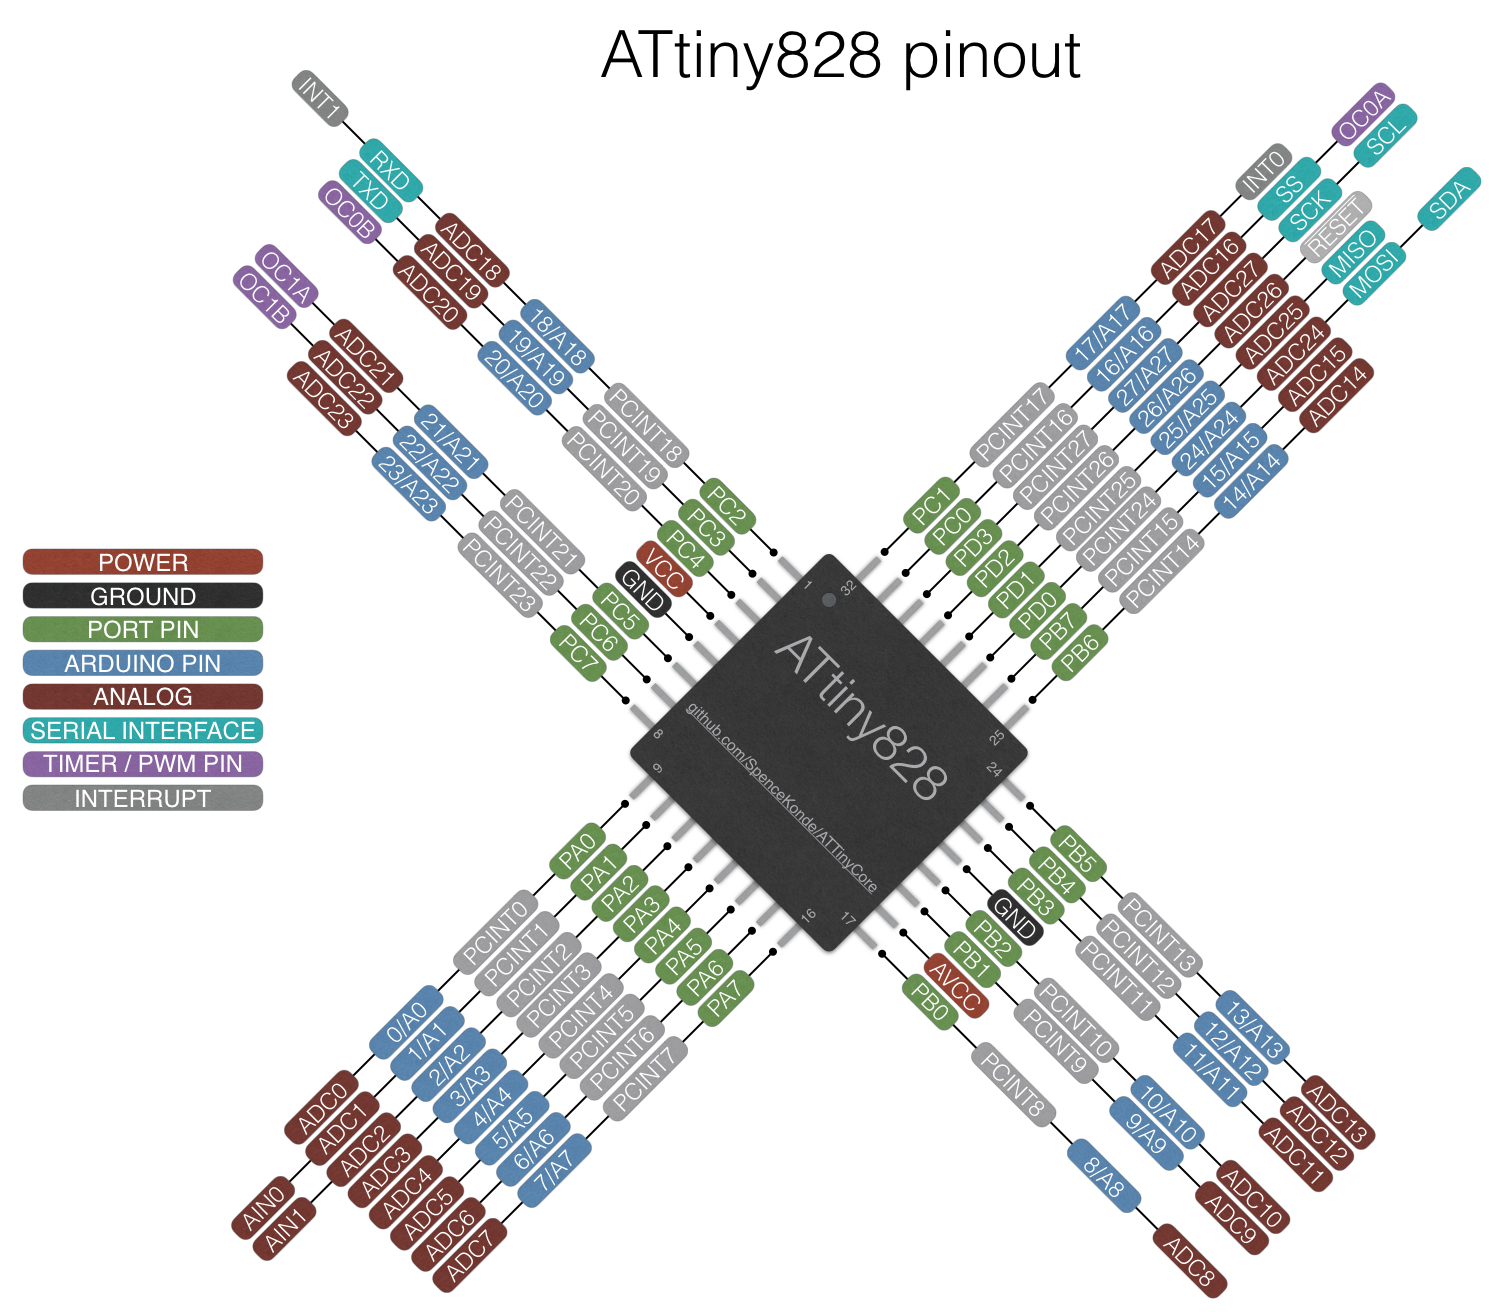 ATtiny88 Microcontroller SMD package pinout